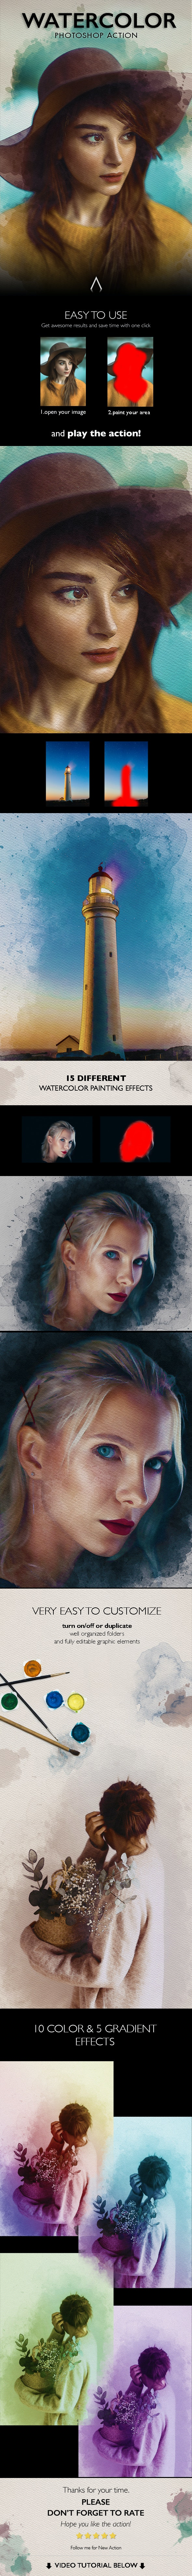 Watercolor Photoshop Action - Photo Effects Actions